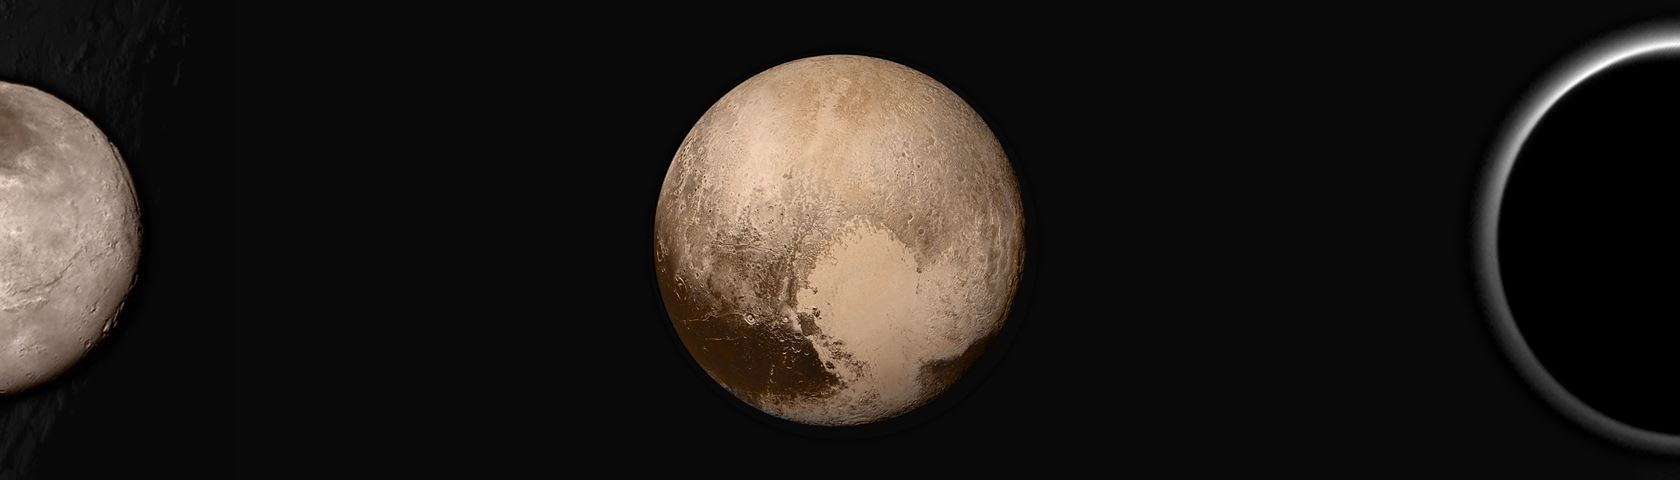 Montage of Pluto and Charon photos